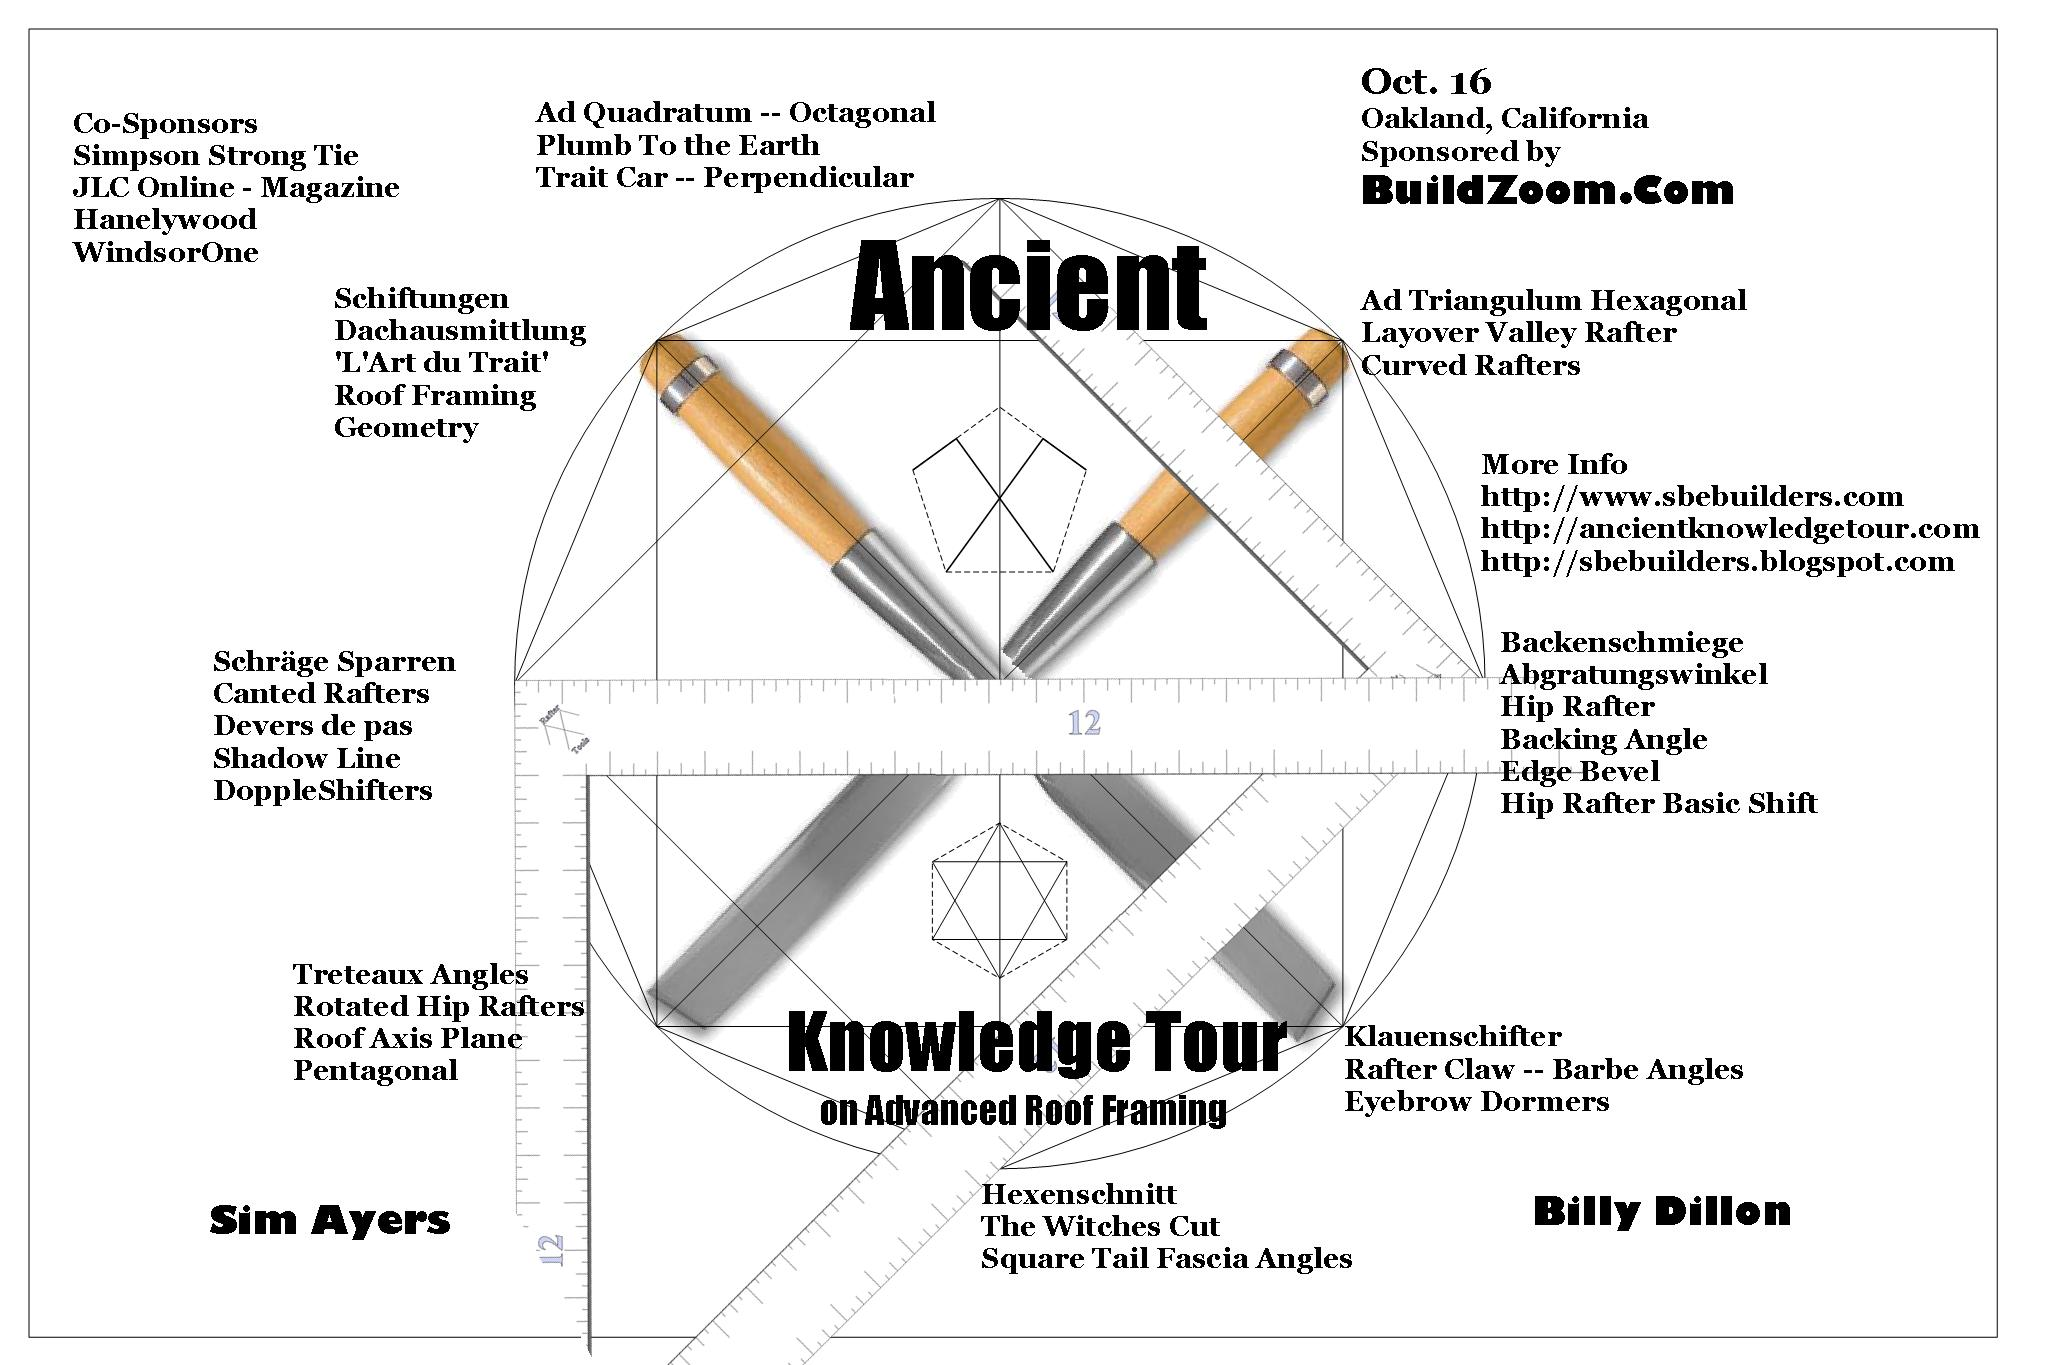 Ancient Knowledge Tour Of Roof Framing - Framing - Contractor Talk